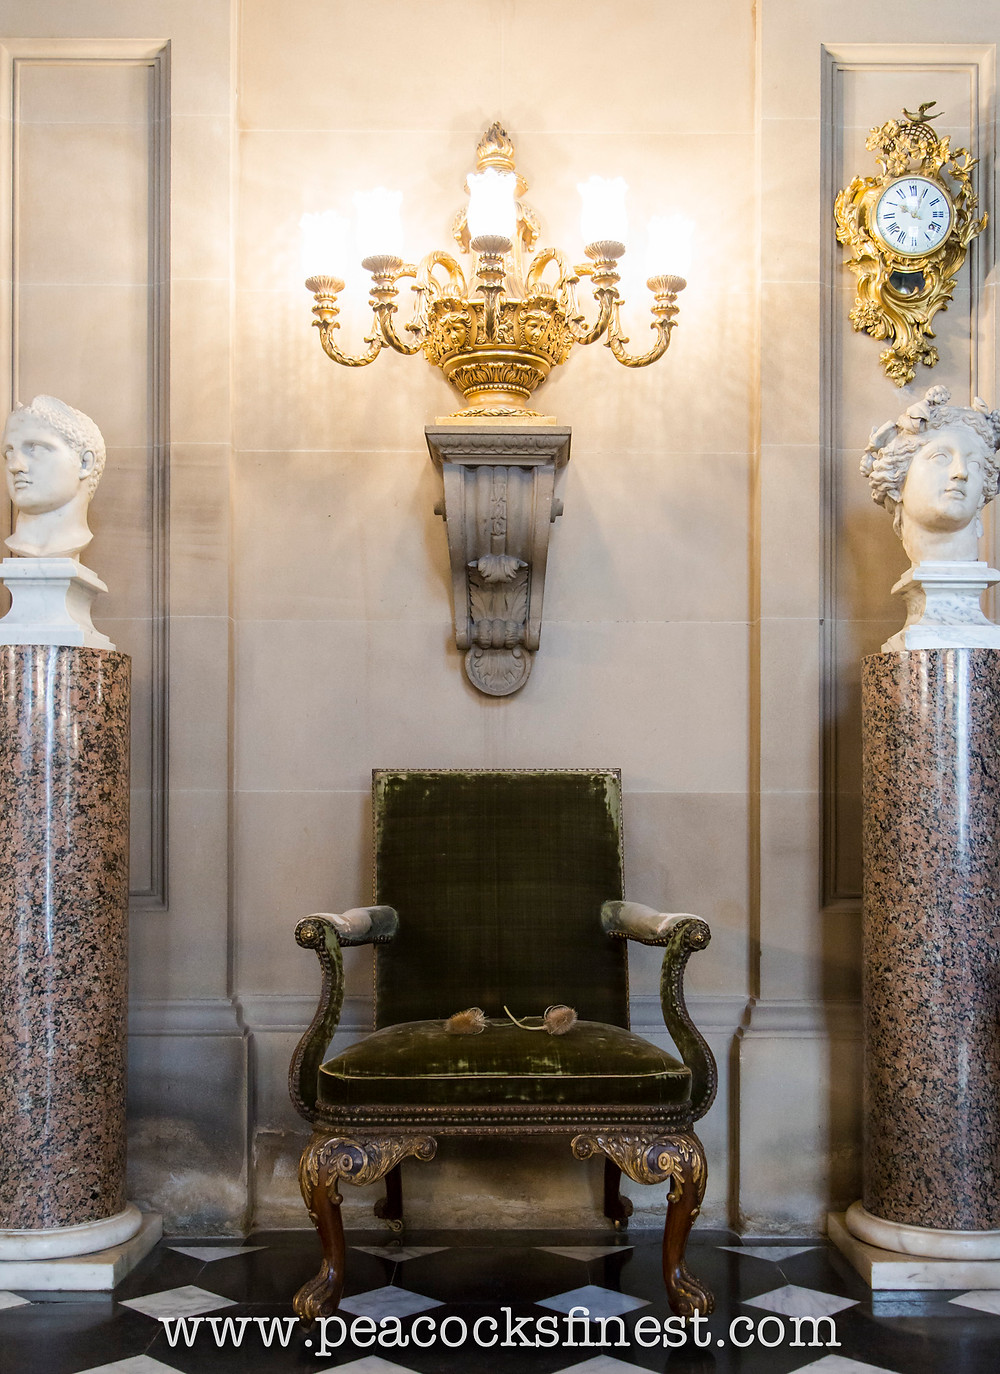 Chatsworth House, The Painted Hall. A superb antique George II period walnut and gilt armchair, c. 1730